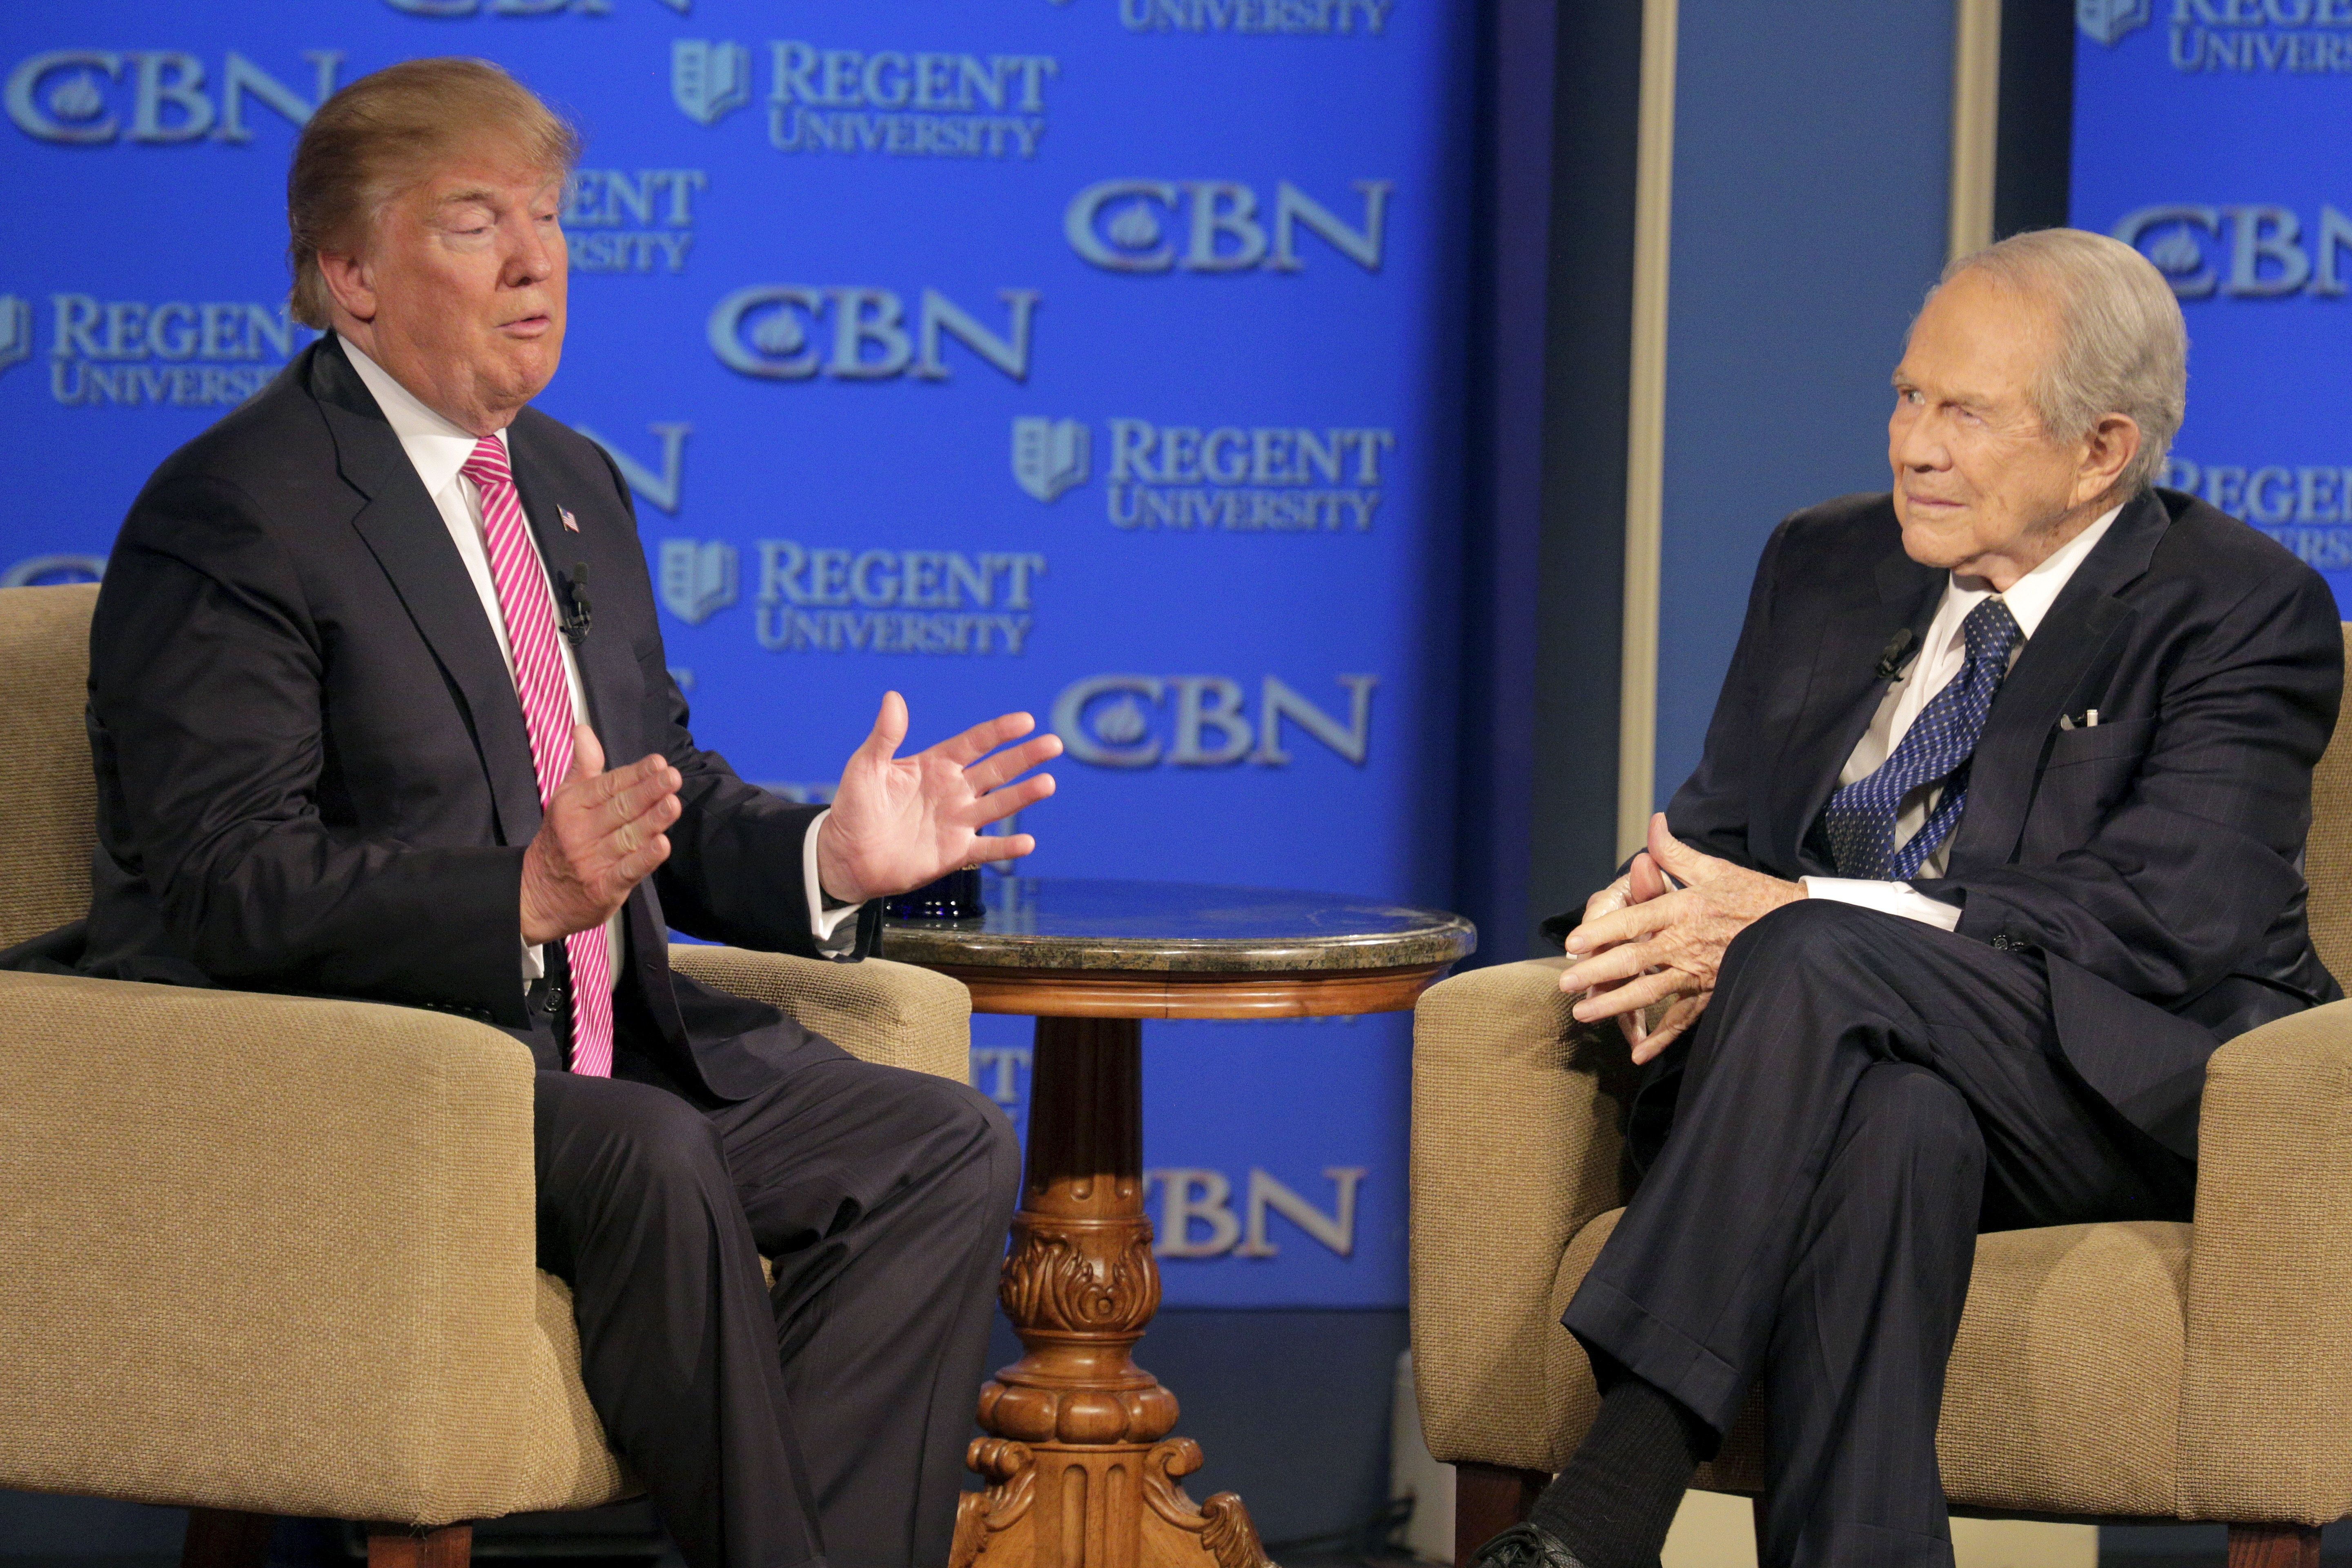 U.S. Republican presidential candidate Donald Trump (L) speaks with Pat Robertson at a campaign event at Regents University in Virginia Beach, Virginia February 24, 2016. REUTERS/Joshua Roberts